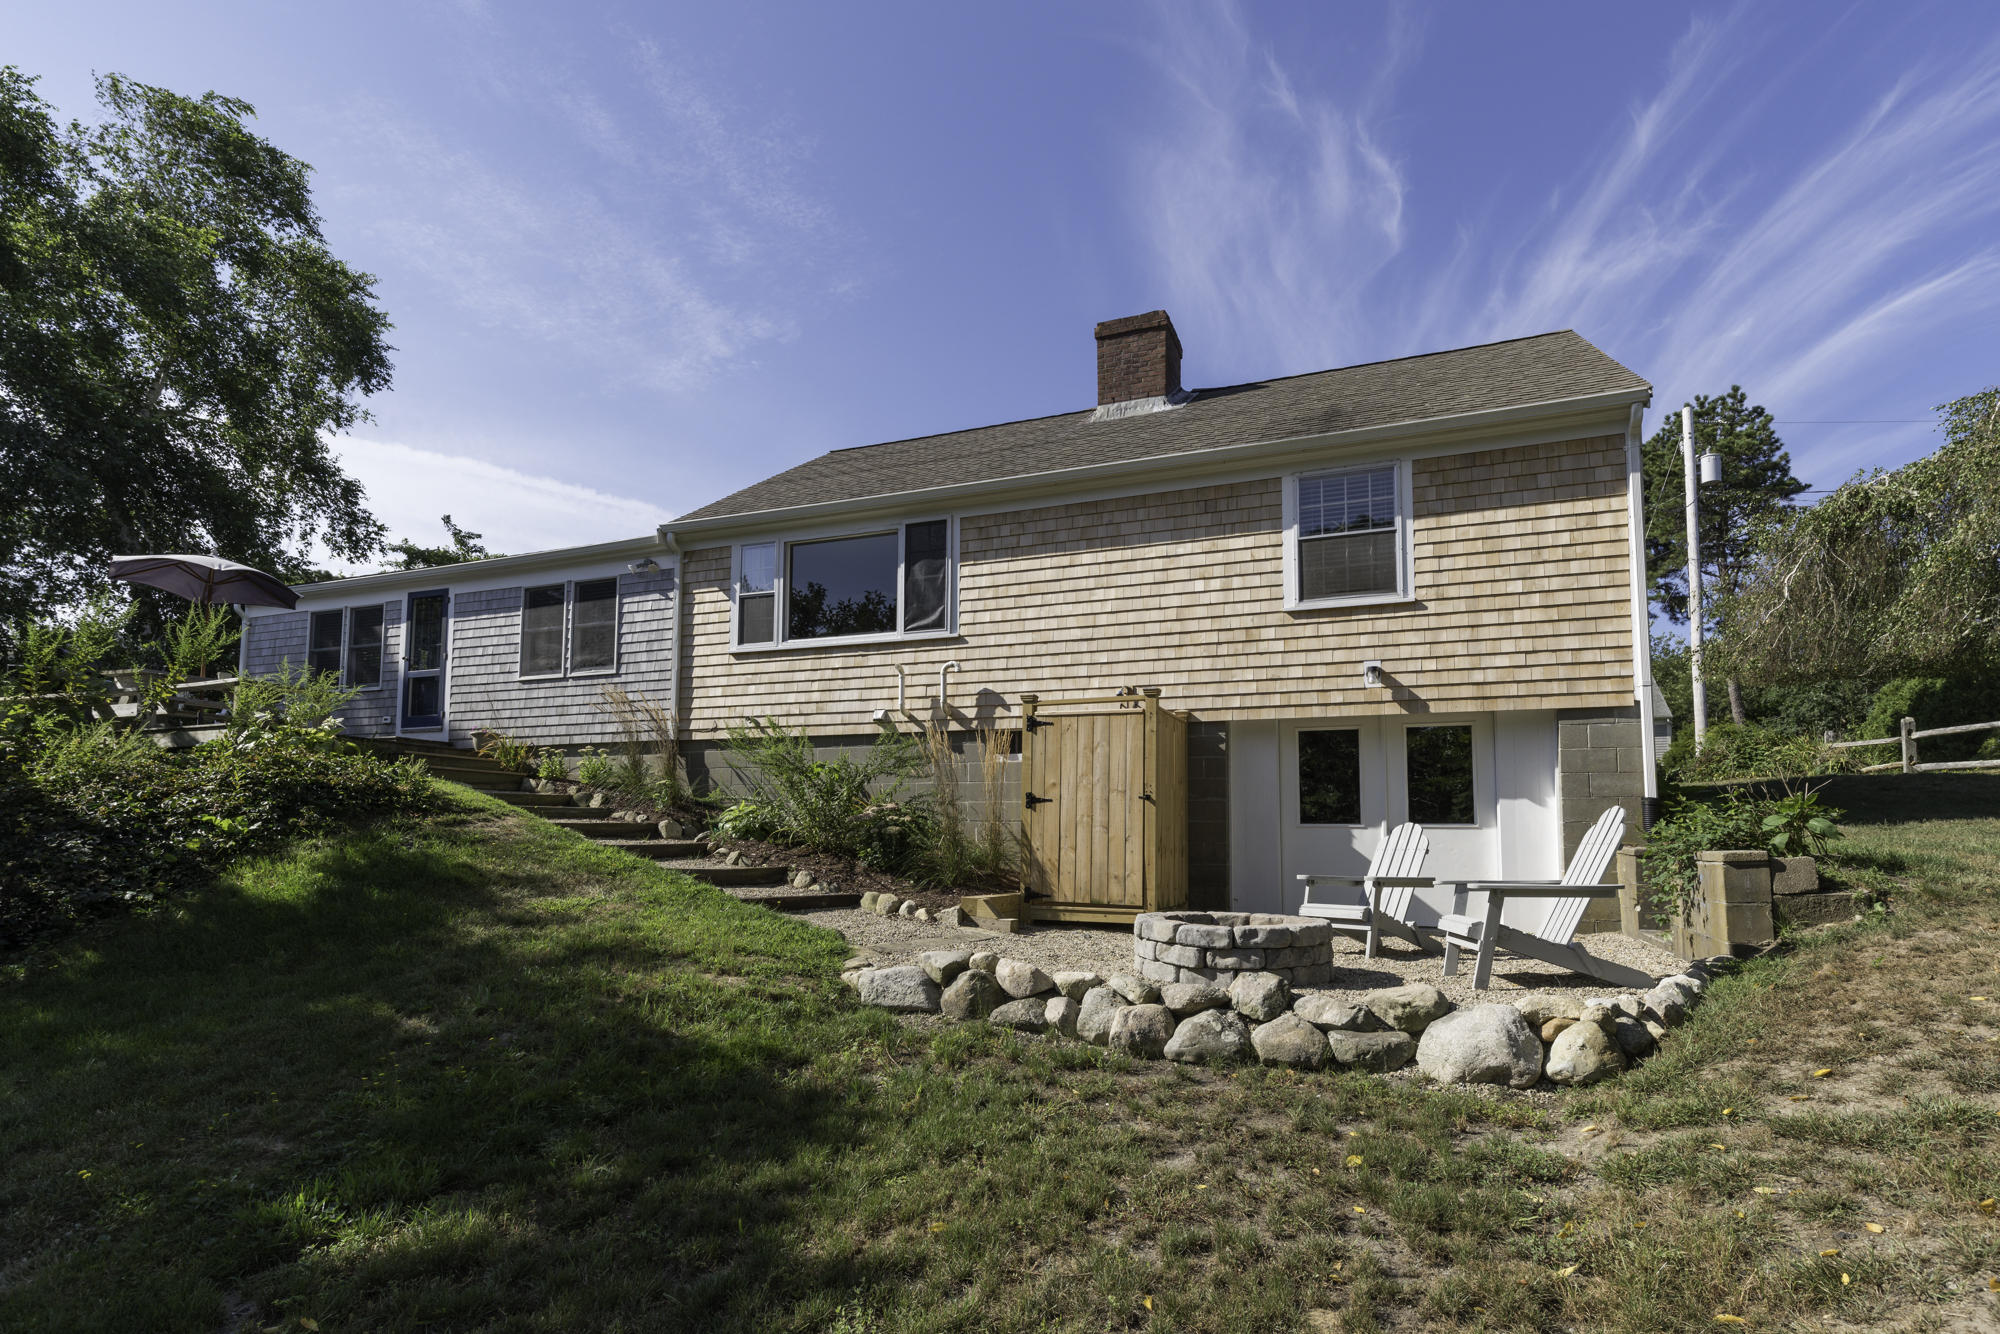 46 Meadow Brook Road, North Chatham MA, 02650 - slide 2